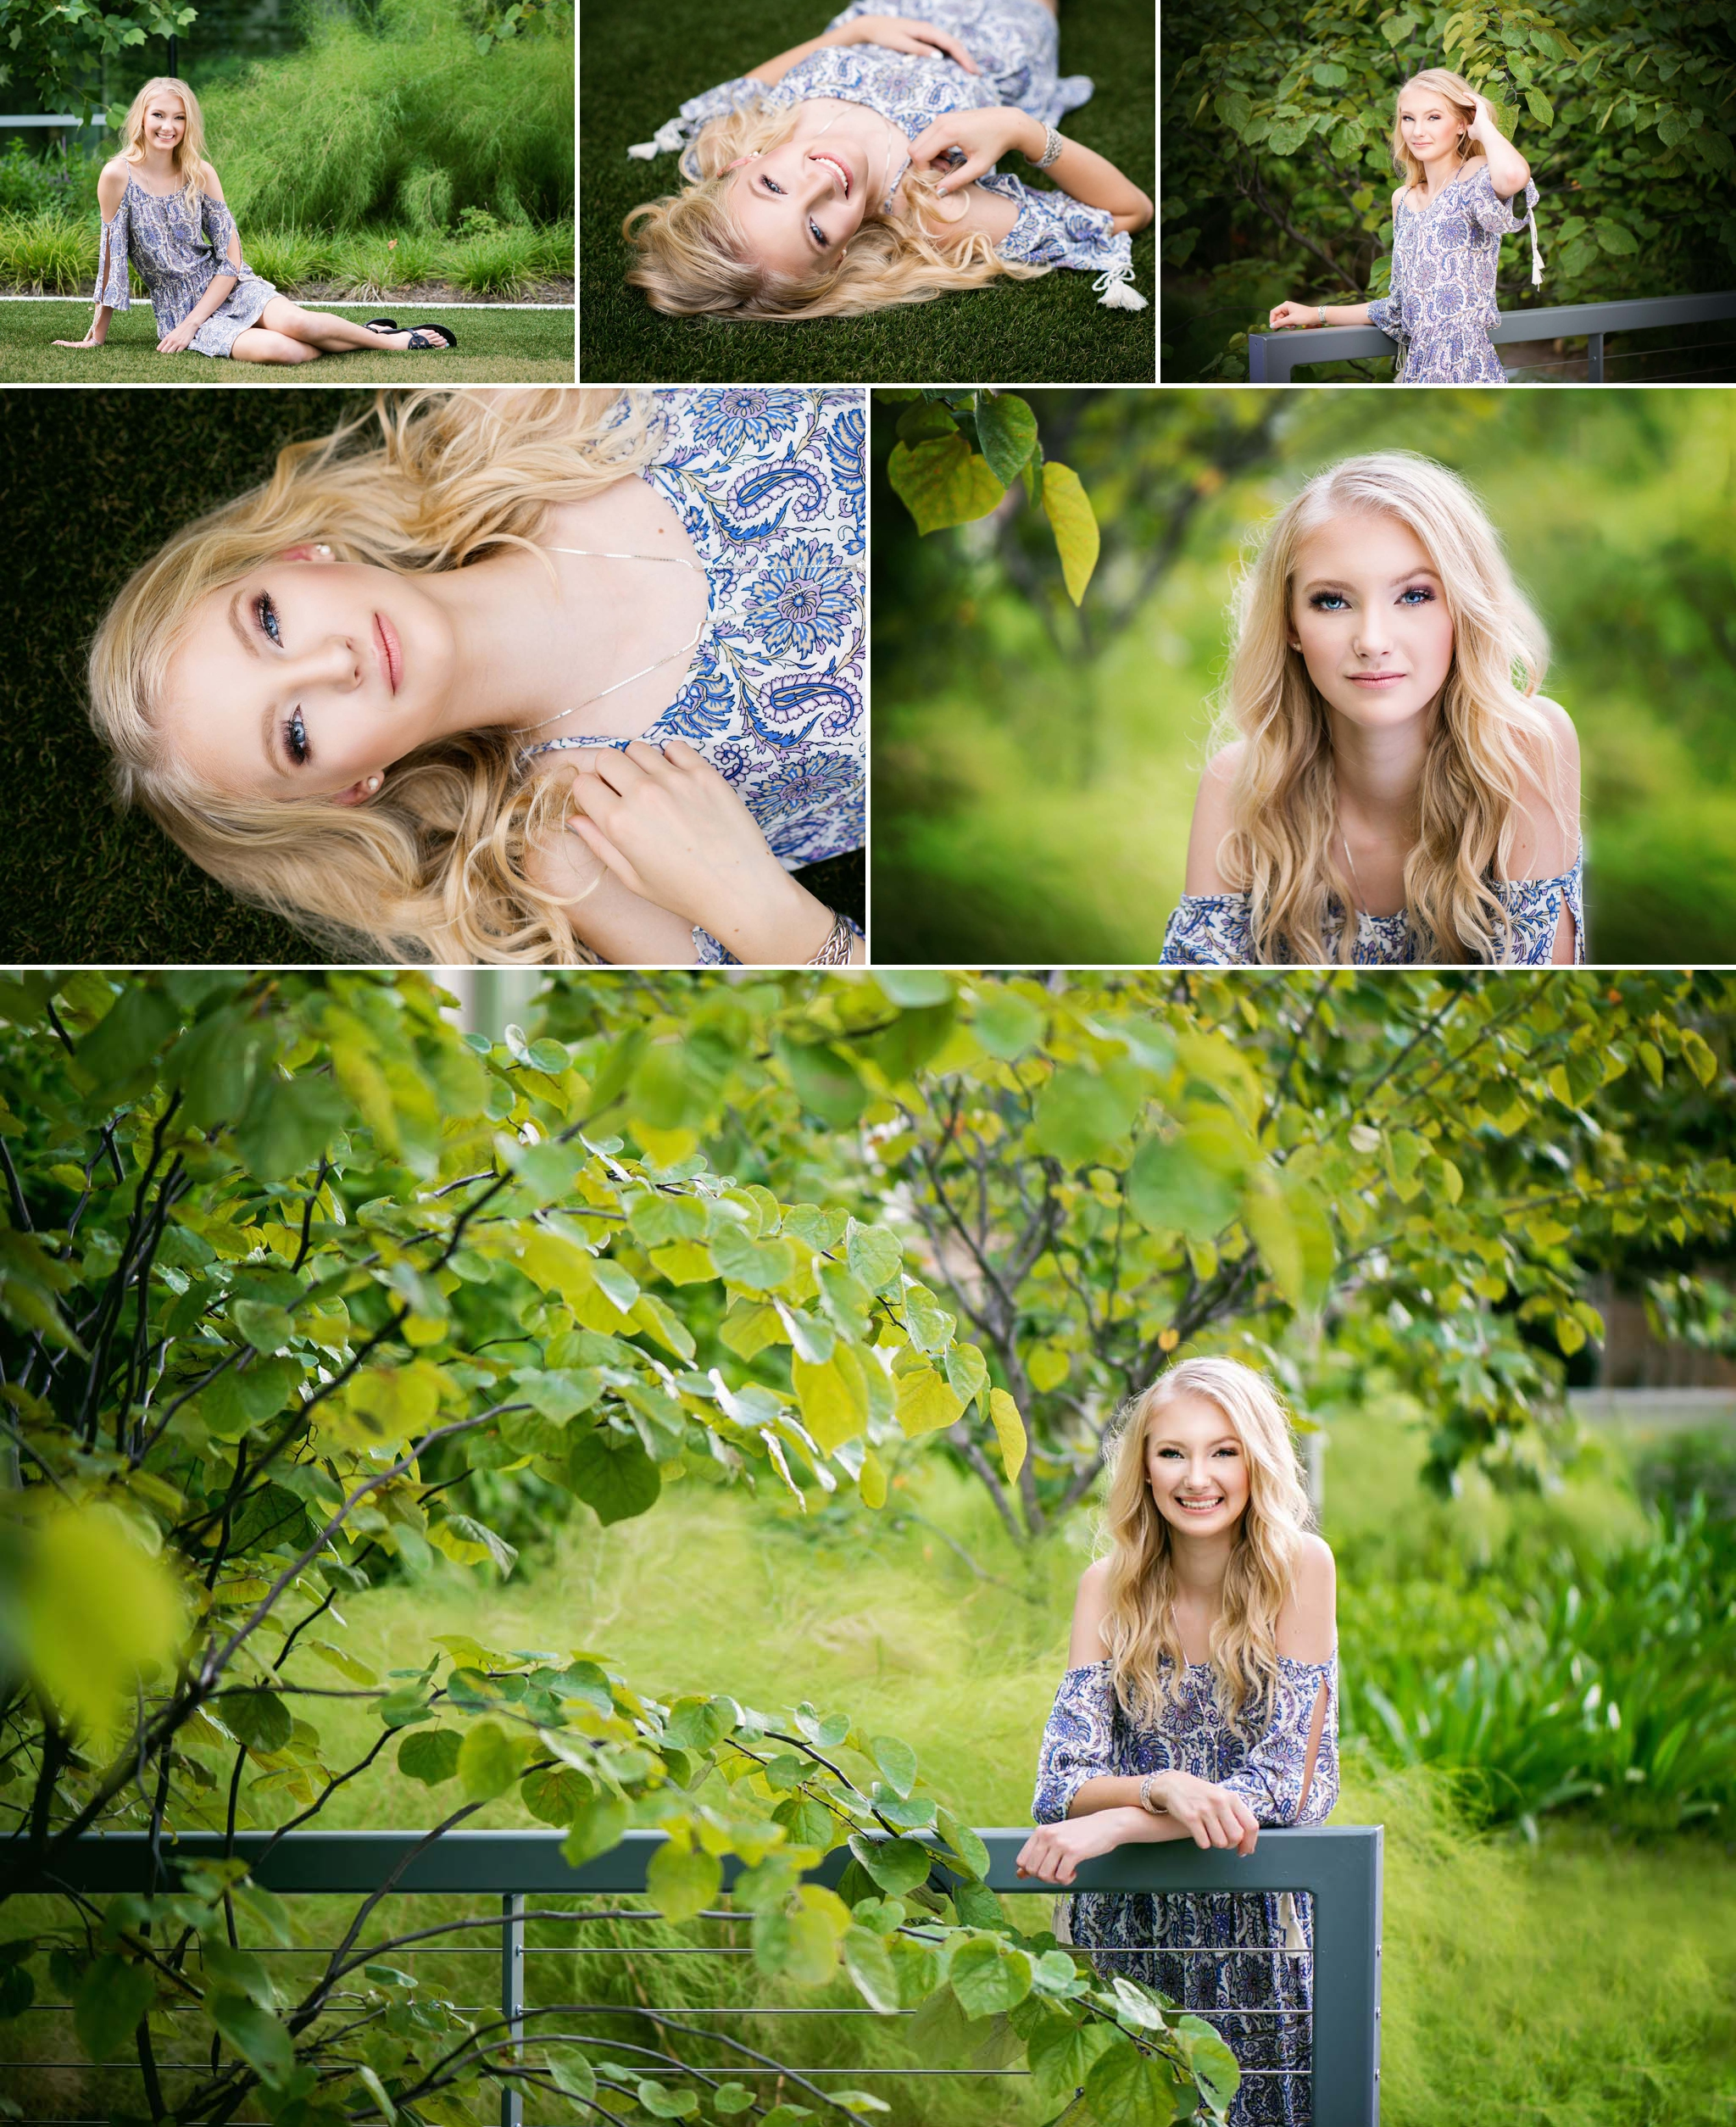 LASA, Austin Senior Portrait Photographer